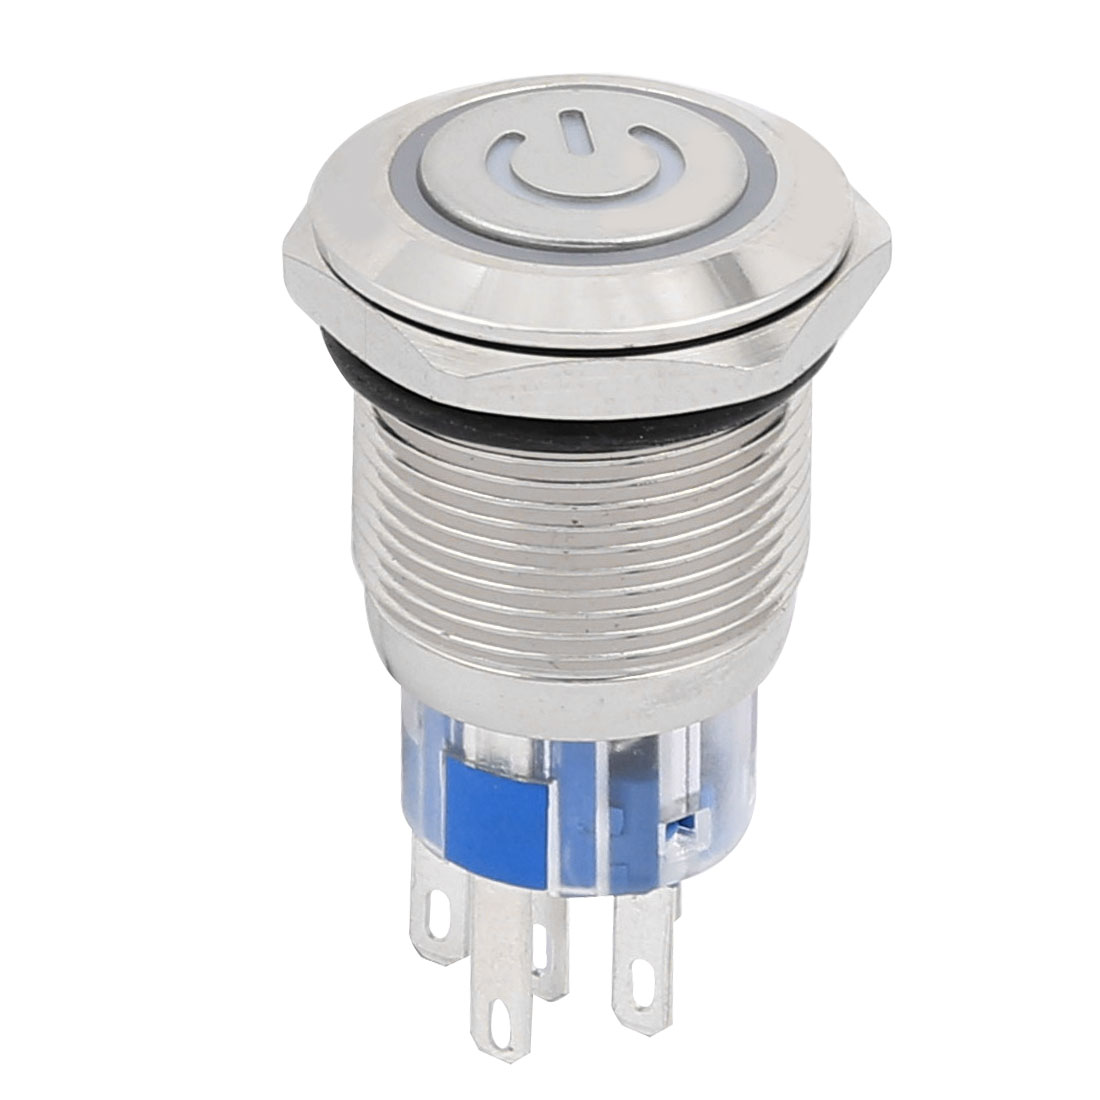 DC24V 19mm Thread Dia 5P Red LED Momentary Stainless Push Button Switch